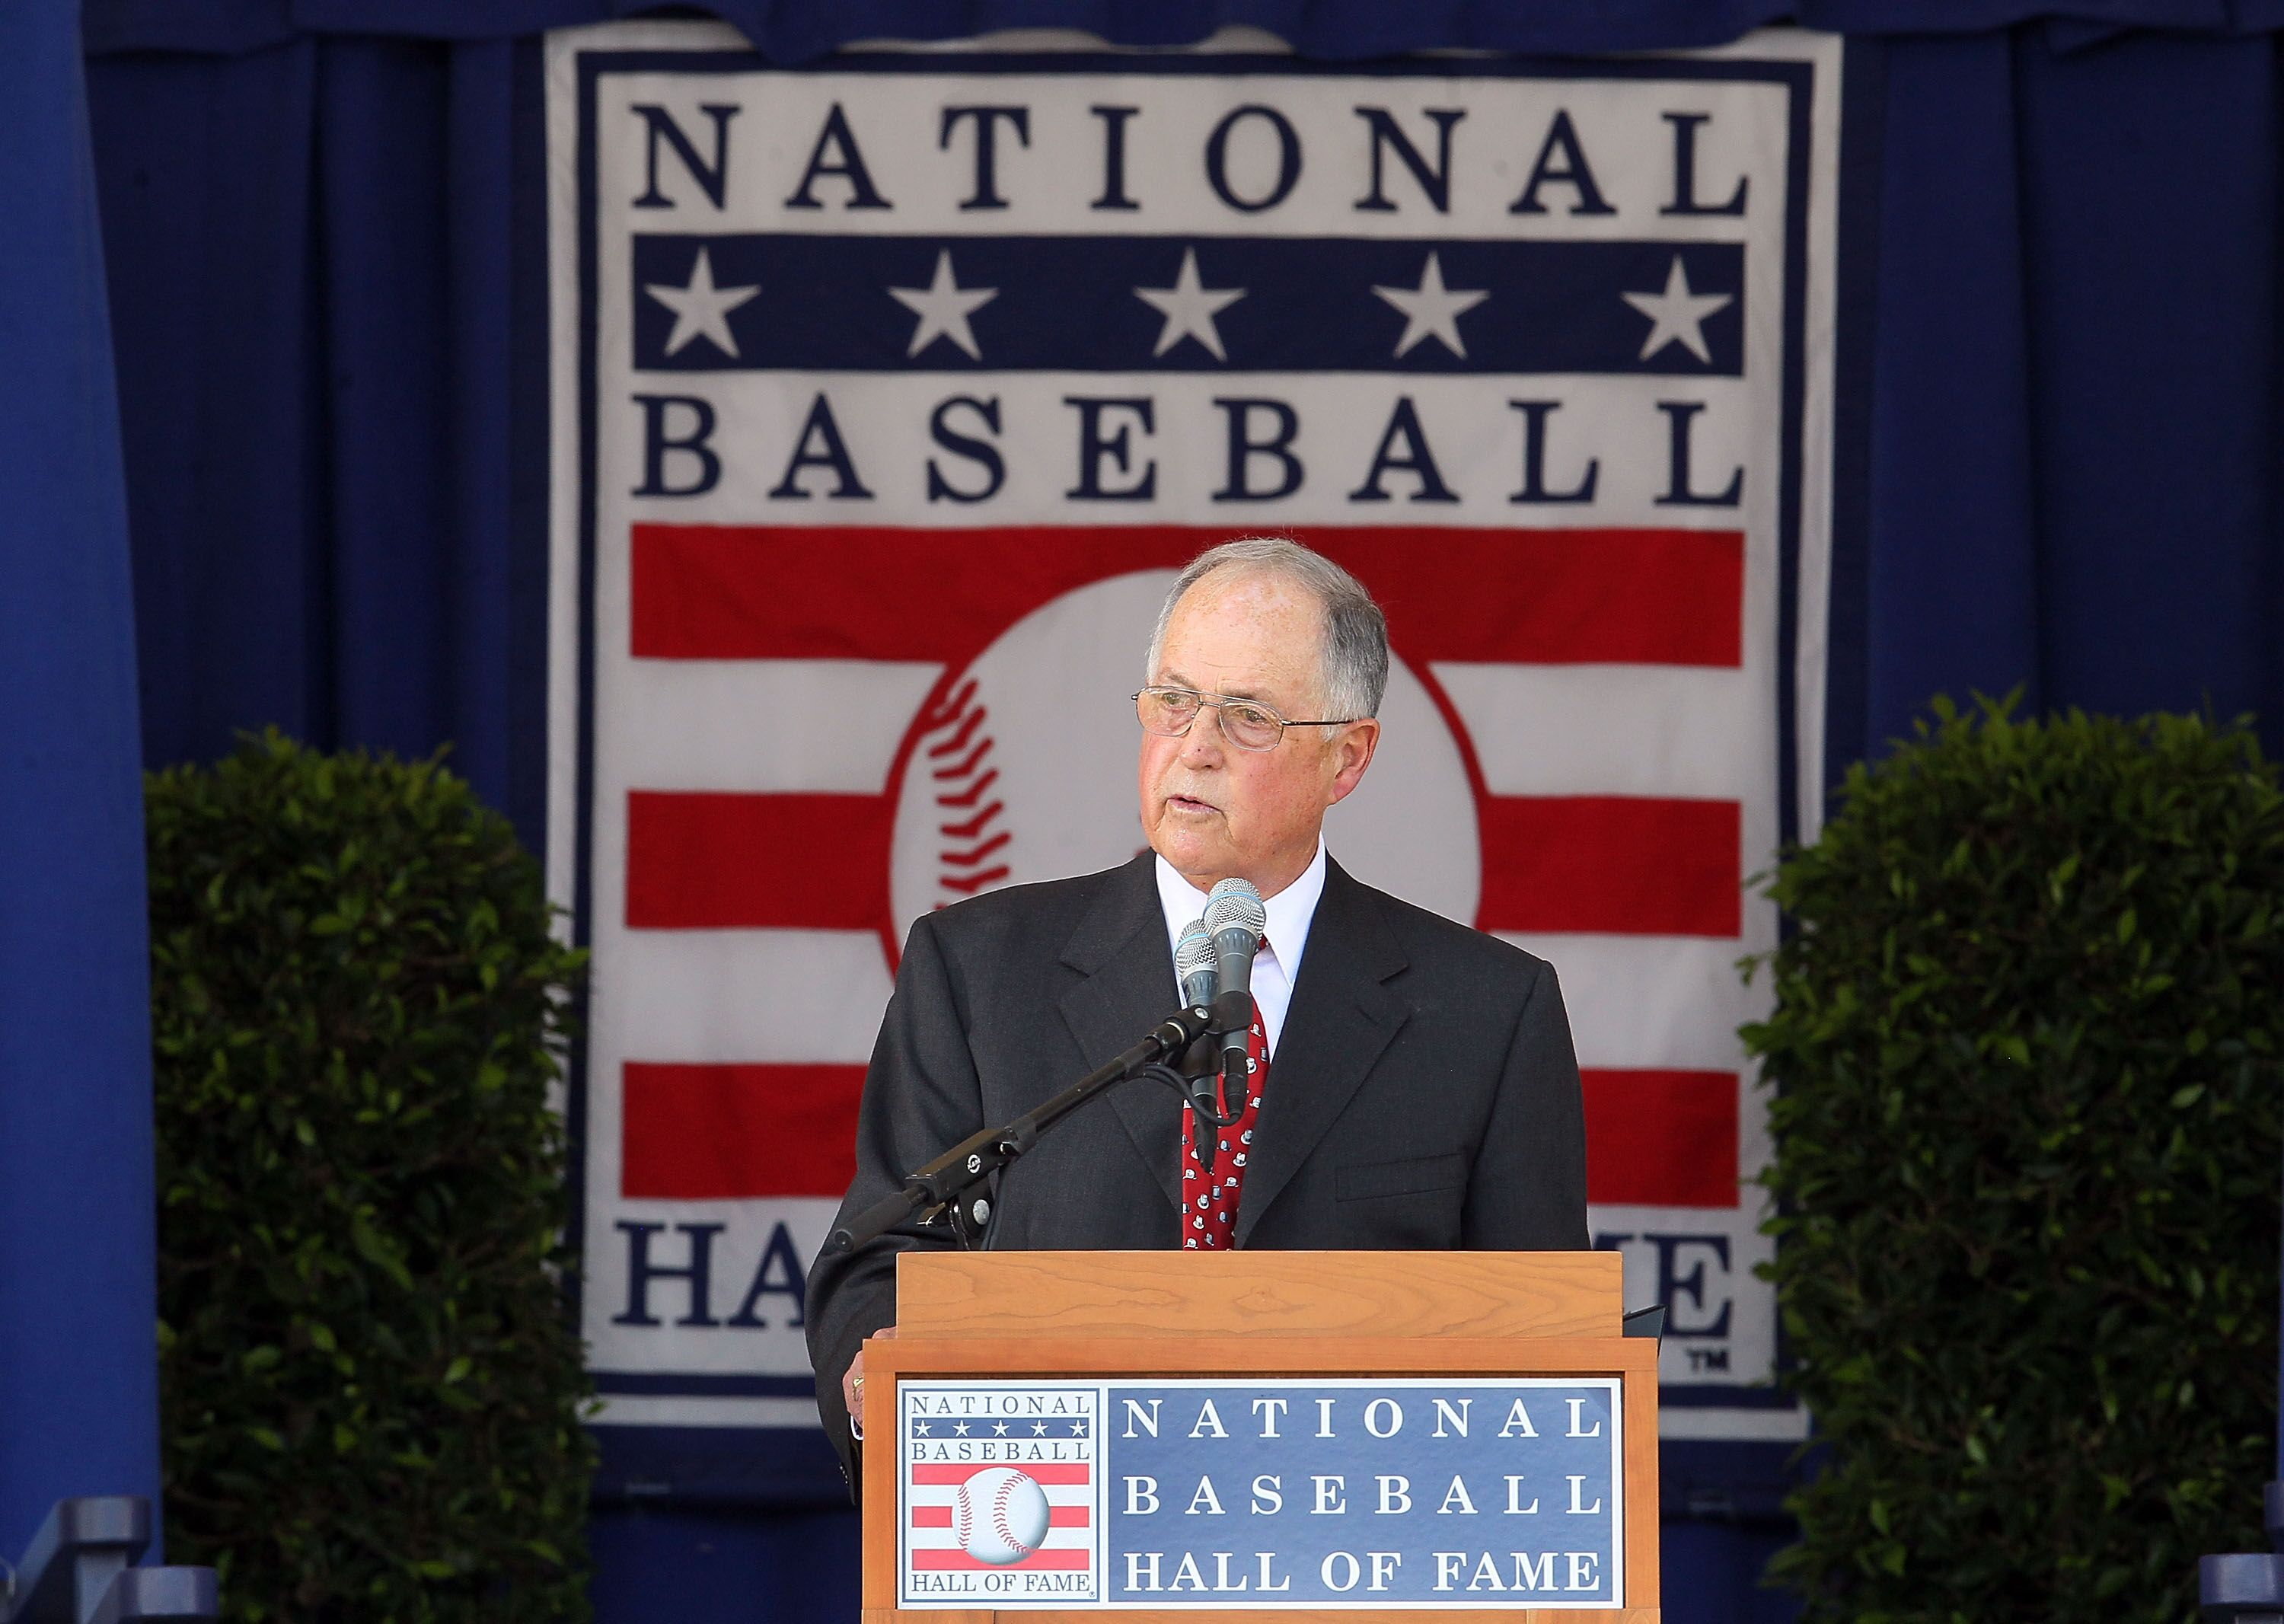 119767365-2011-baseball-hall-of-fame-induction-ceremony.jpg